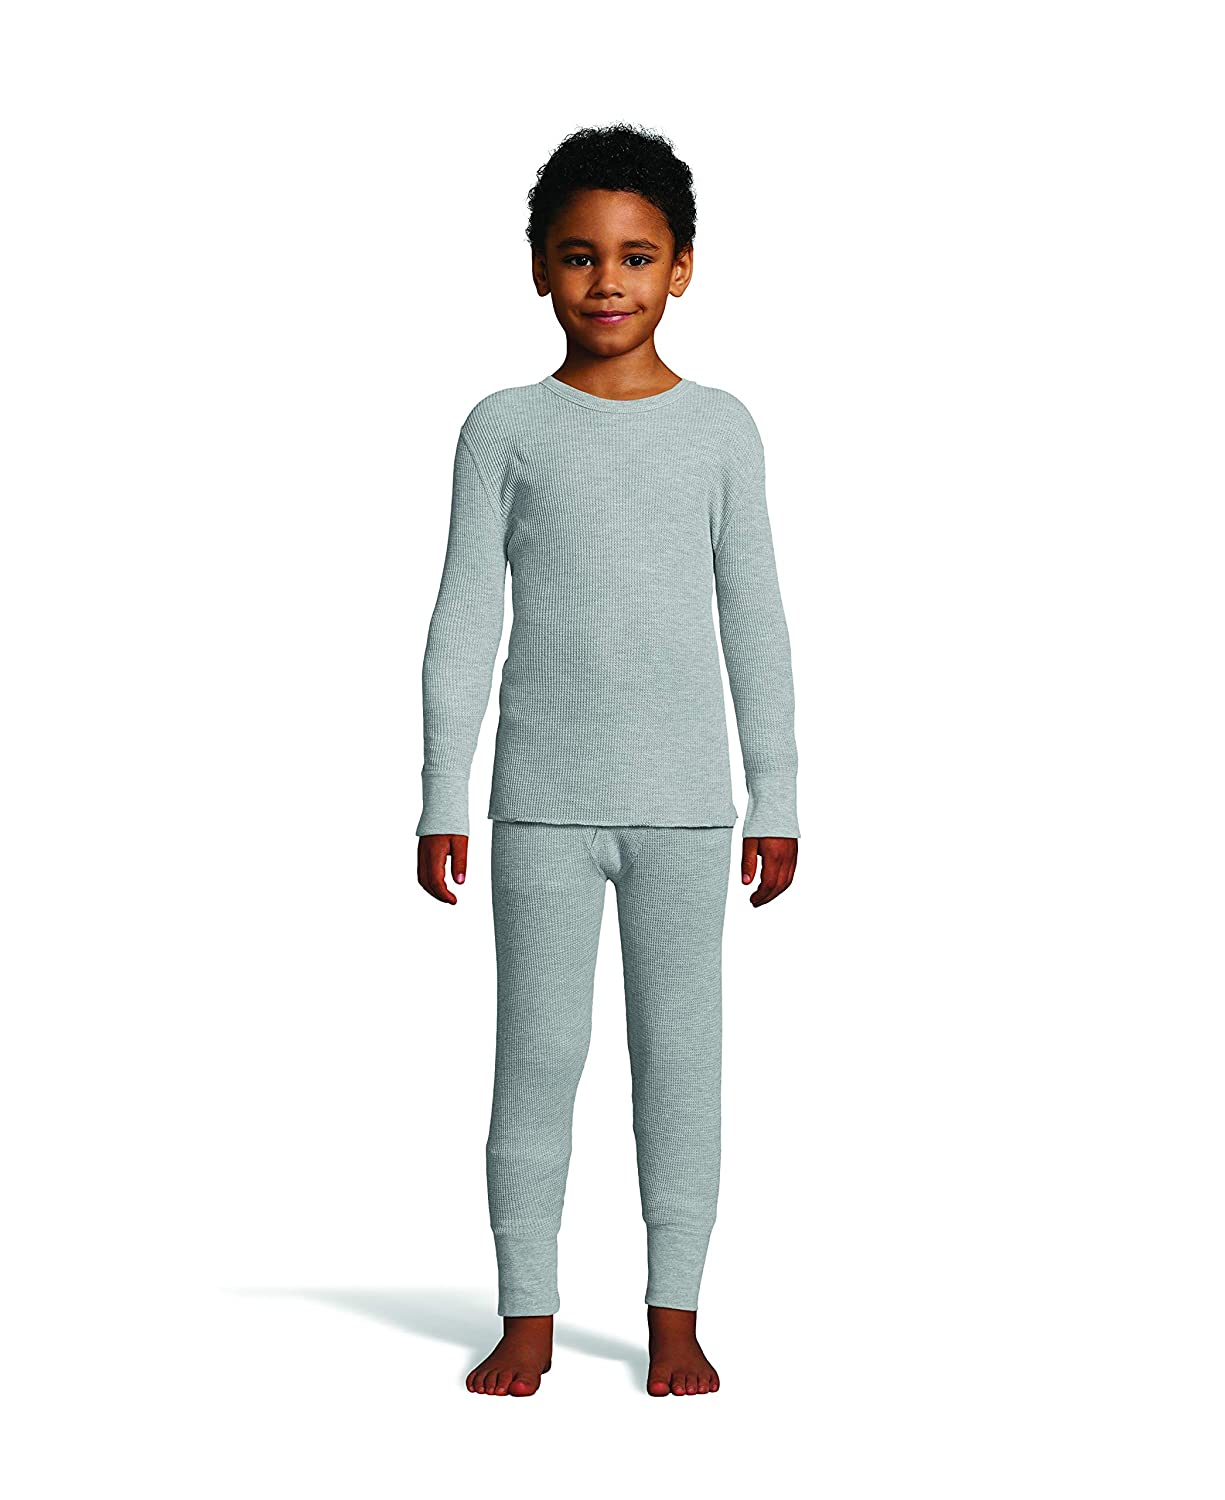 Hanes Boy's Waffle Knit Thermal Set with FreshIQ, X-Temp Technology & Organic Cotton